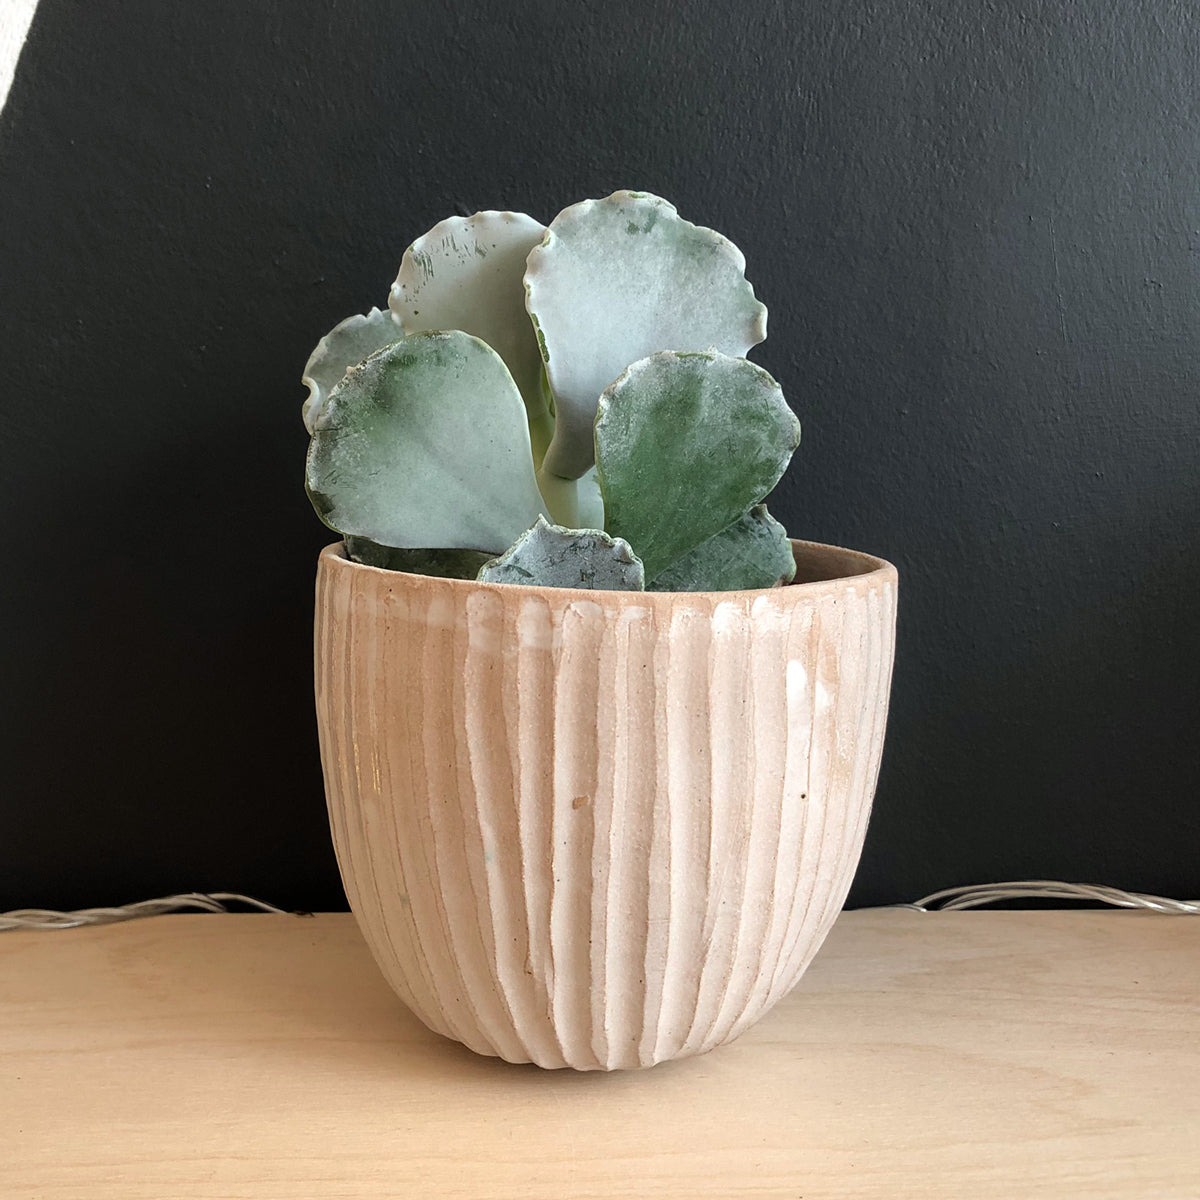 Carved Earthenware Plant Pot - Medium 2